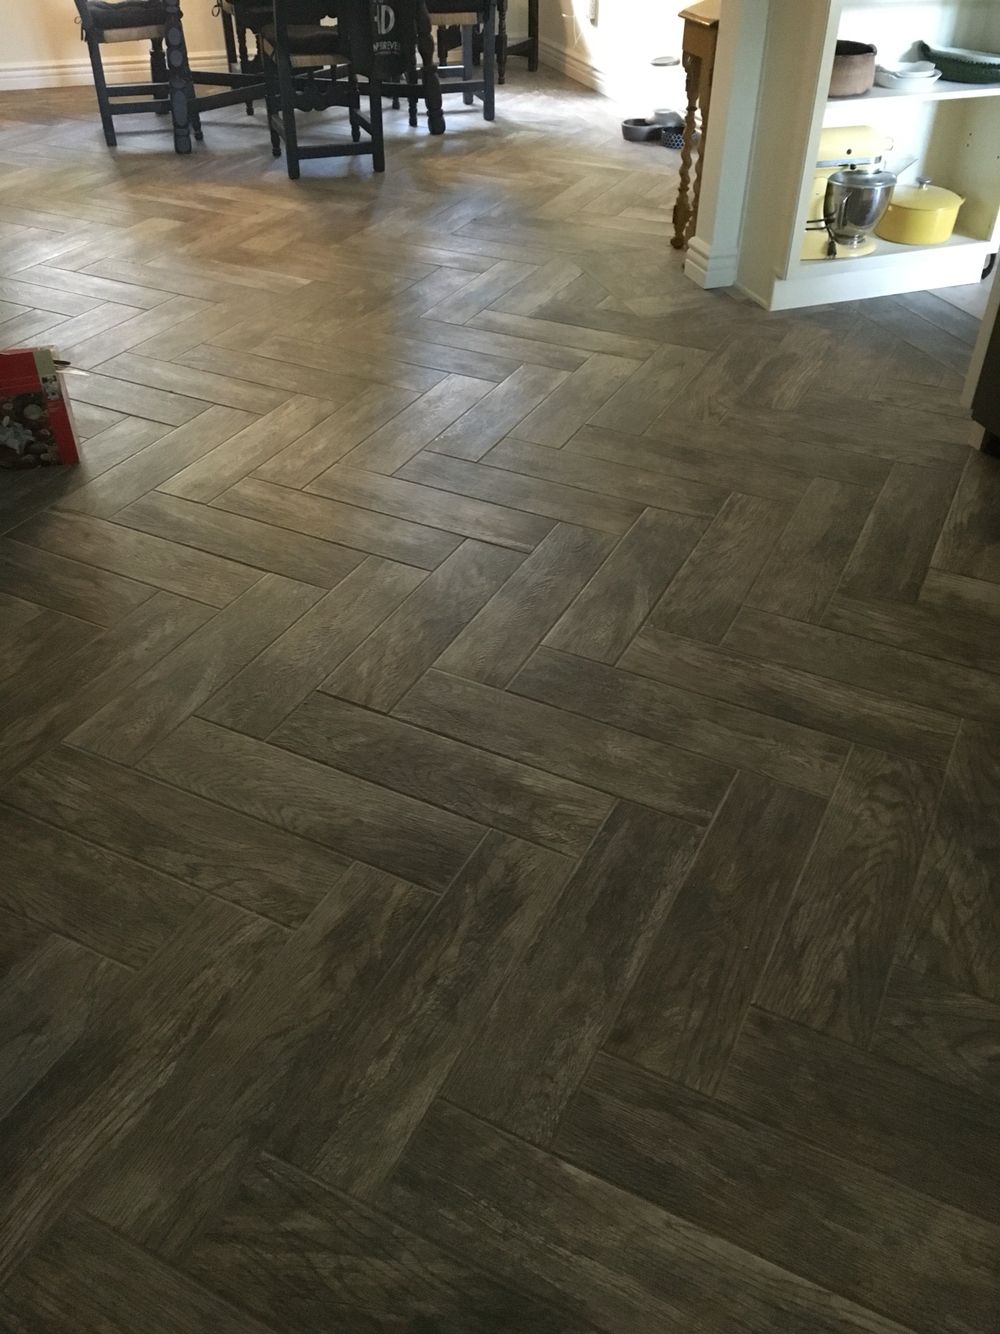 Marazzi Tile In Quot Rustic Bay Quot From Home Depot Love My New